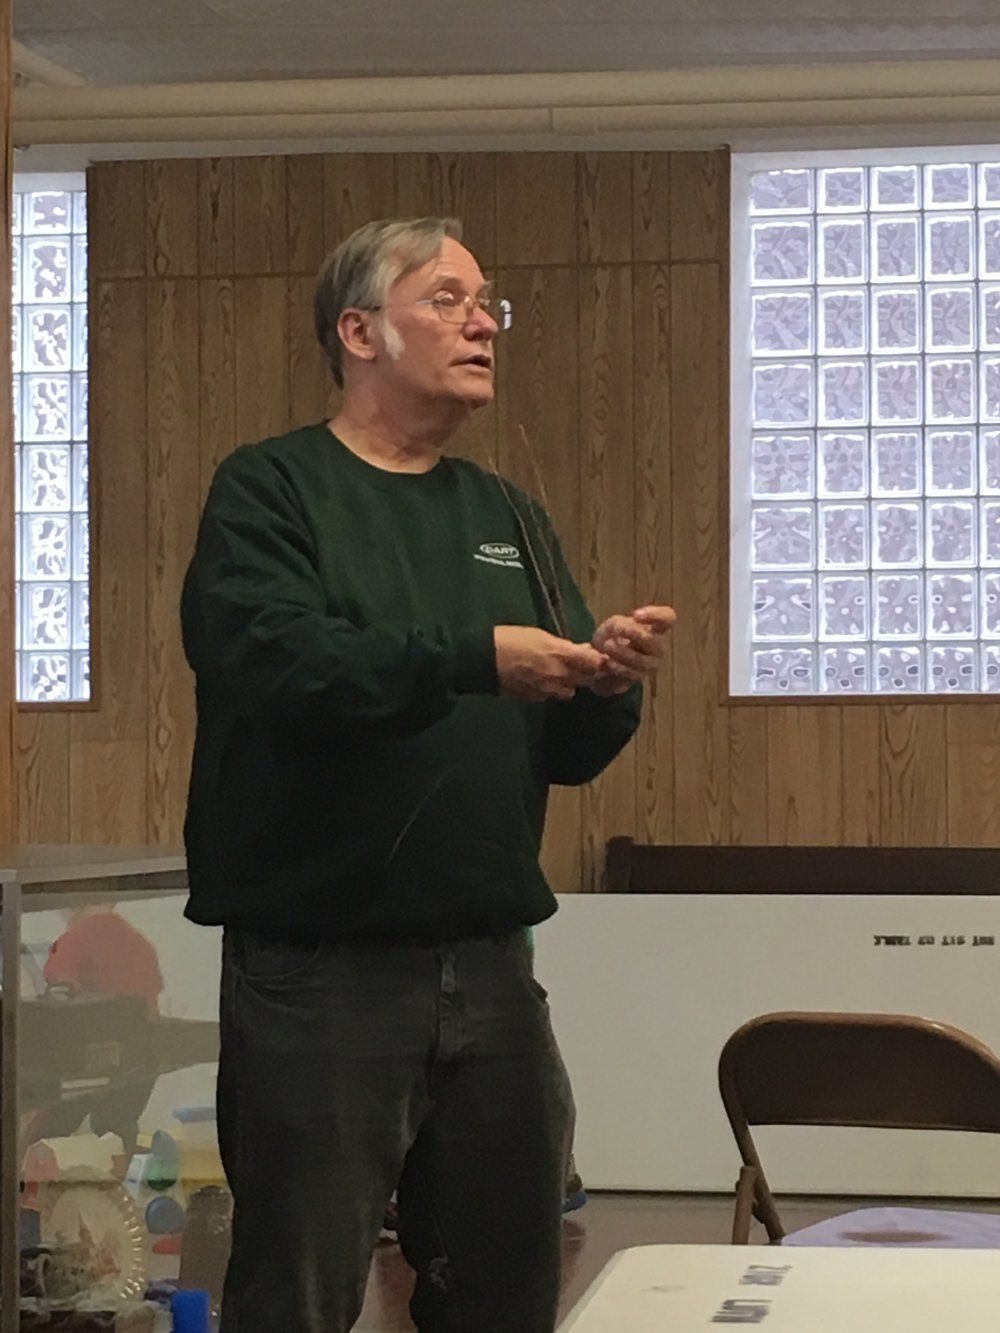 Bob Jurgaitis - KA9CQE gave us a great presentation and demonstration on 220 MHz antennas.